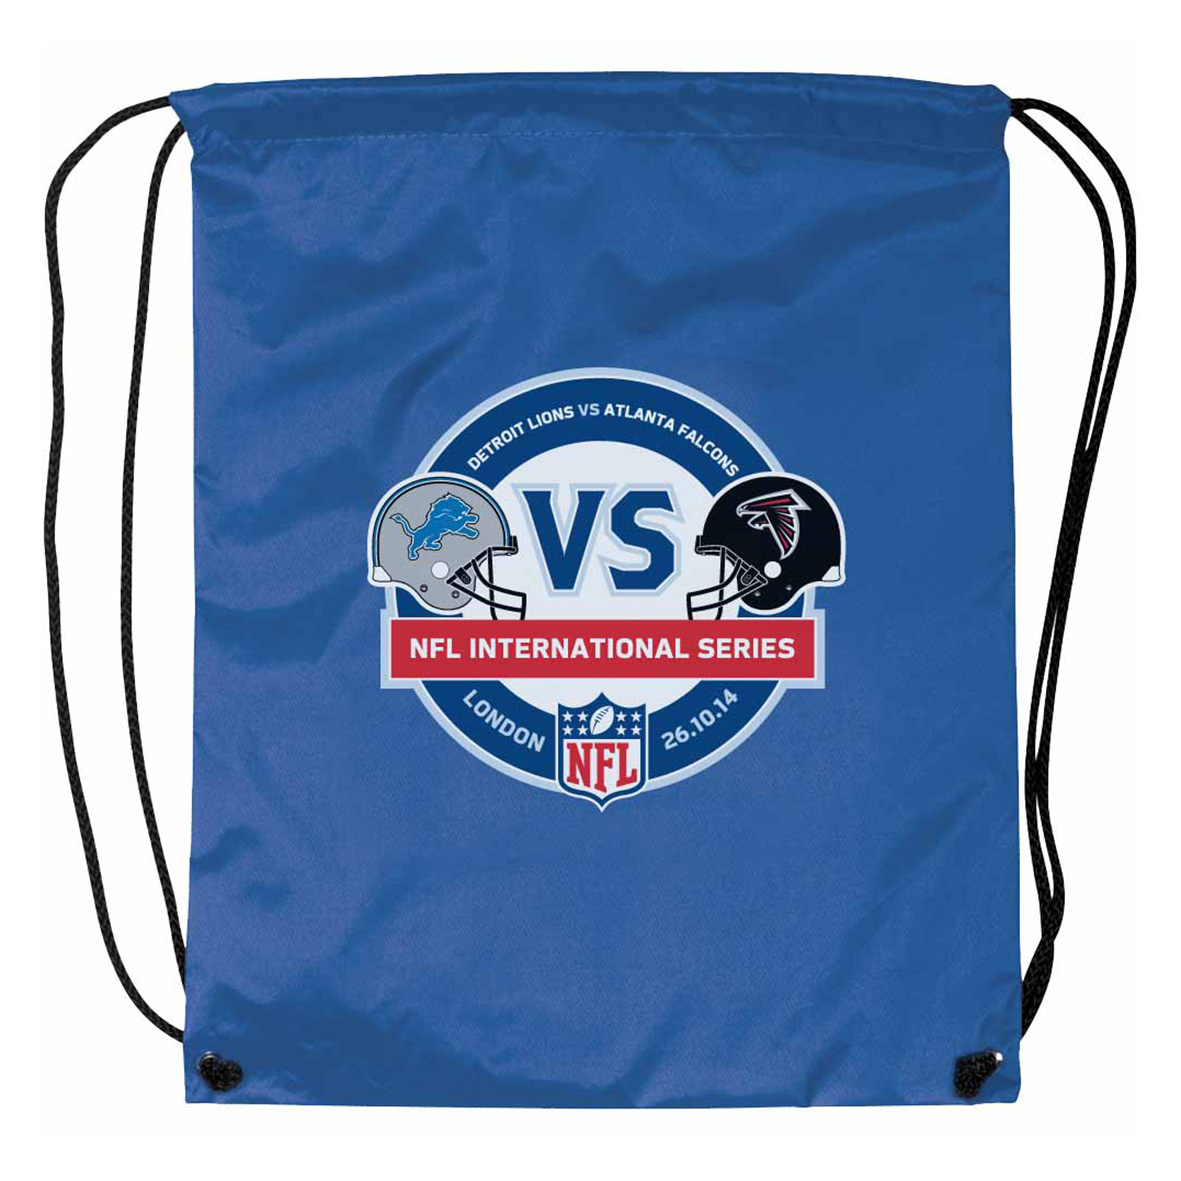 NFL Lions Vs Falcons International Series Game 10 Gymbag